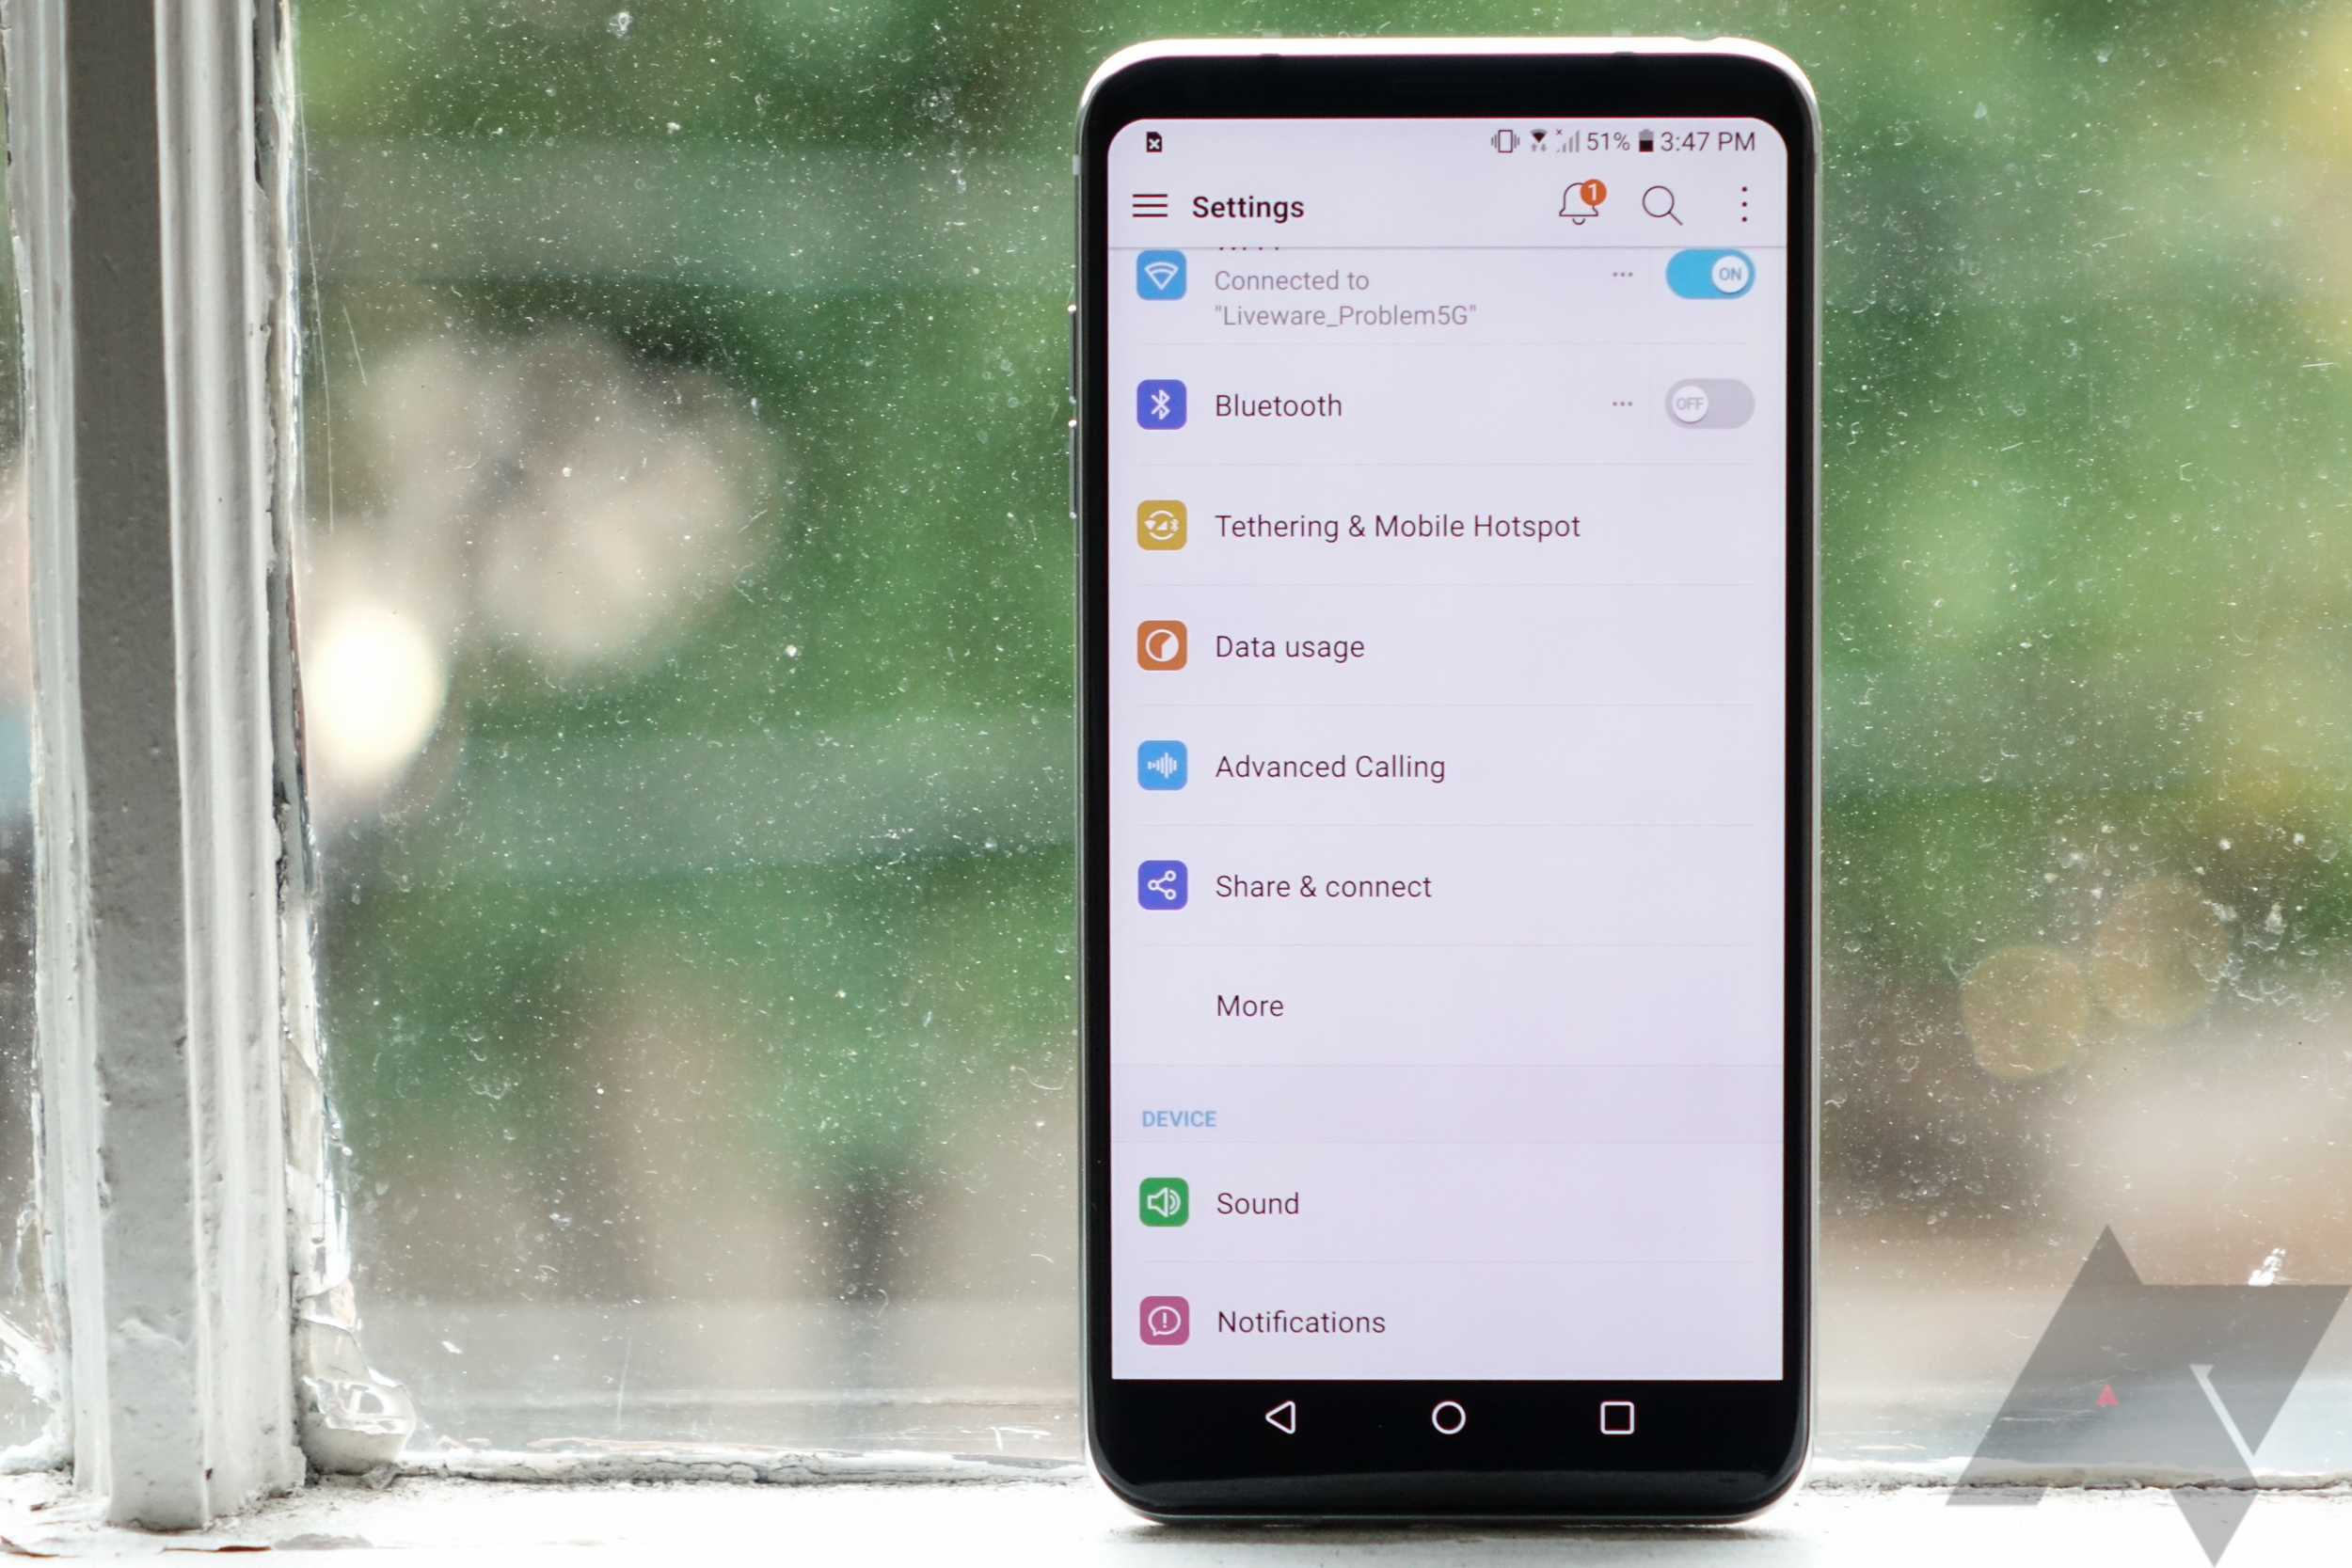 LG adds V30 models for Europe (H930) and Italy (H930G) to bootloader